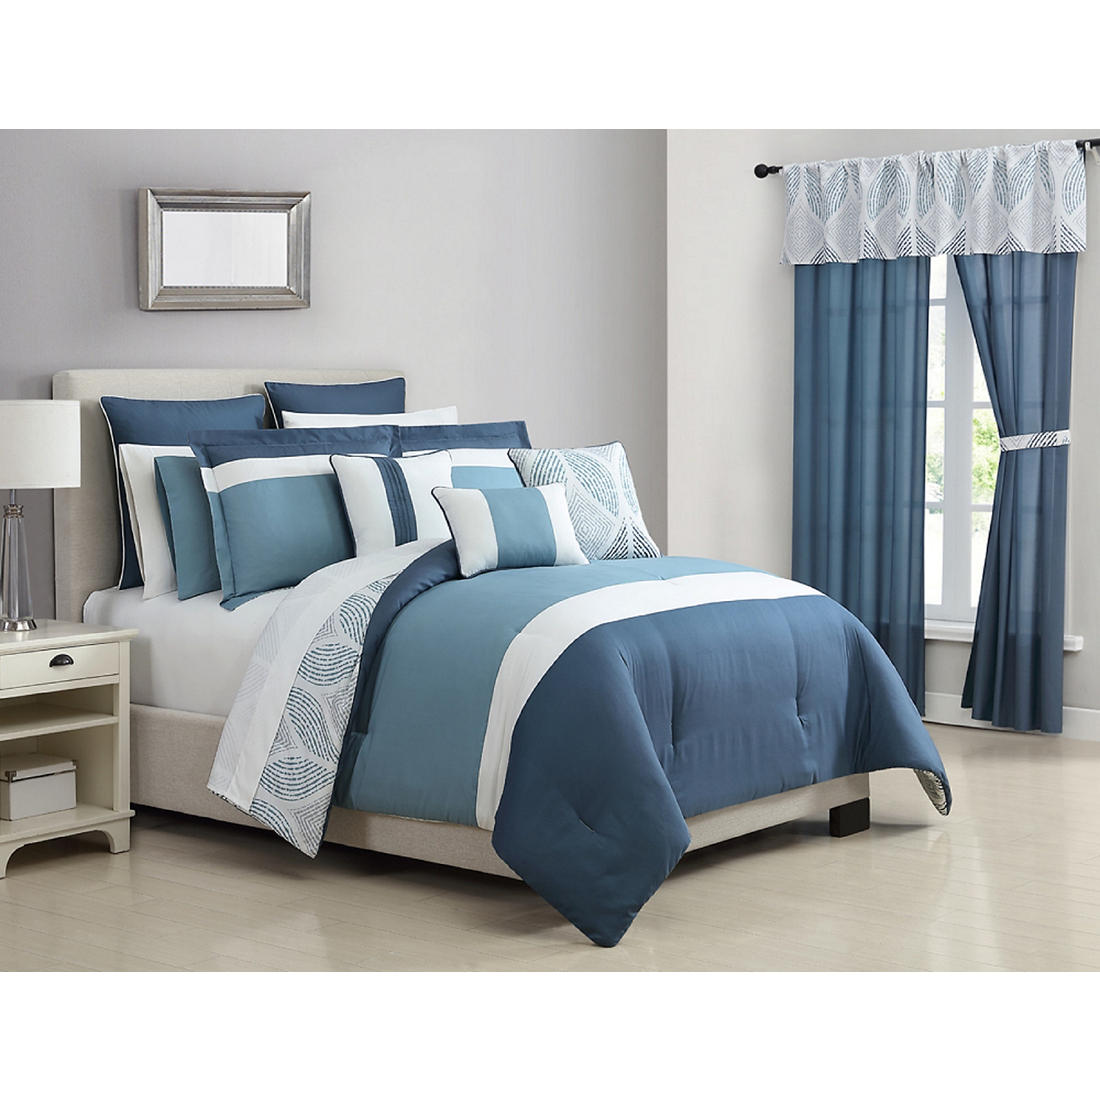 Somerville Home Collection Jessica Queen Size Comforter Set